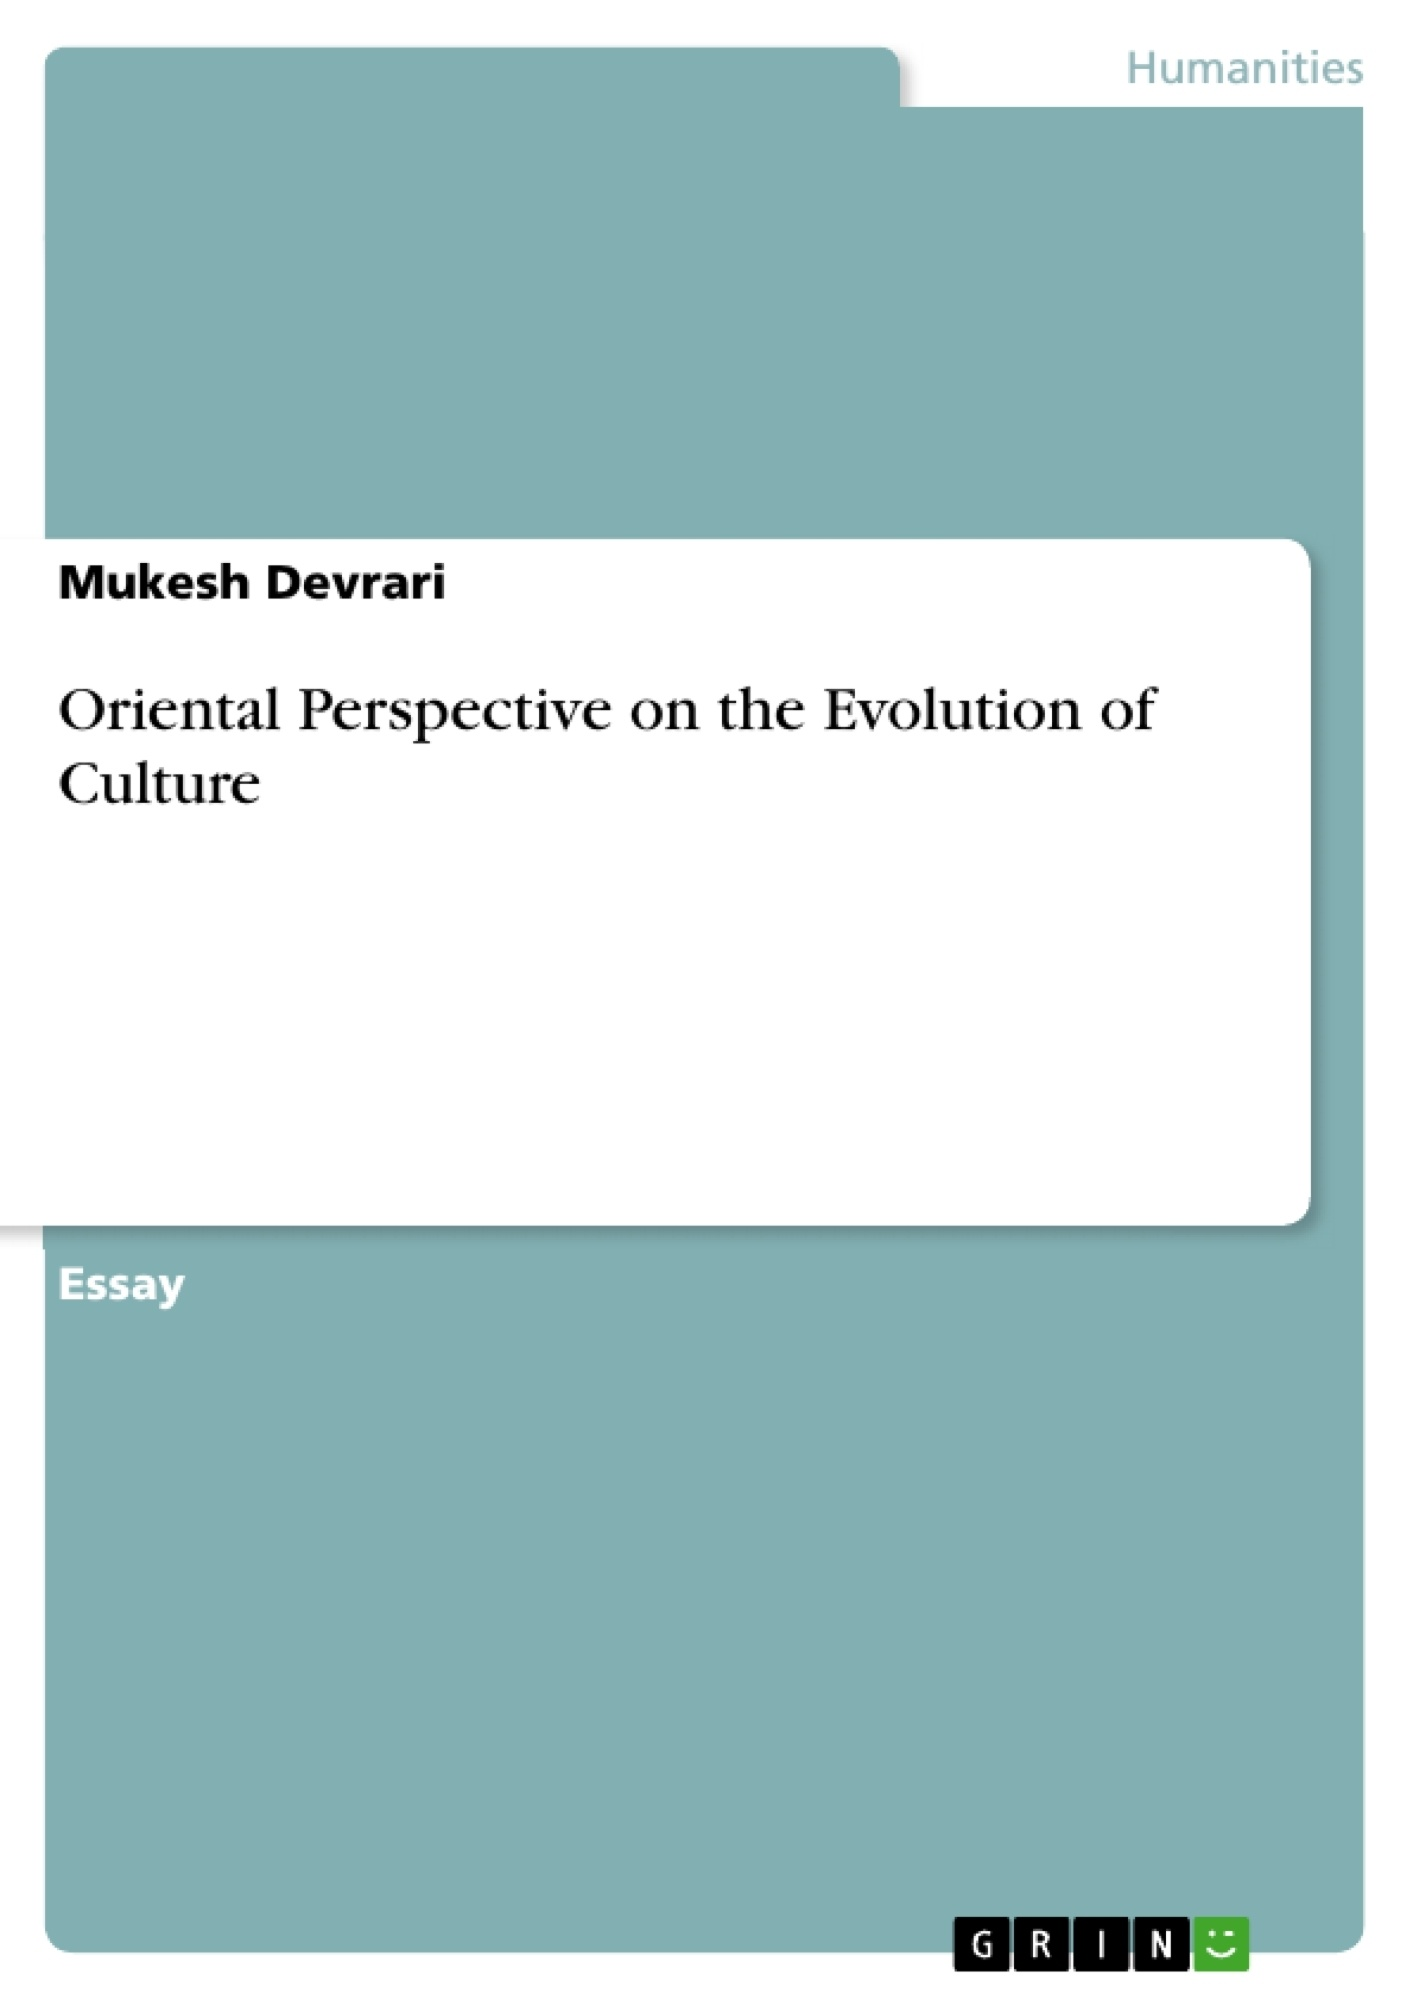 Title: Oriental Perspective on the Evolution of Culture